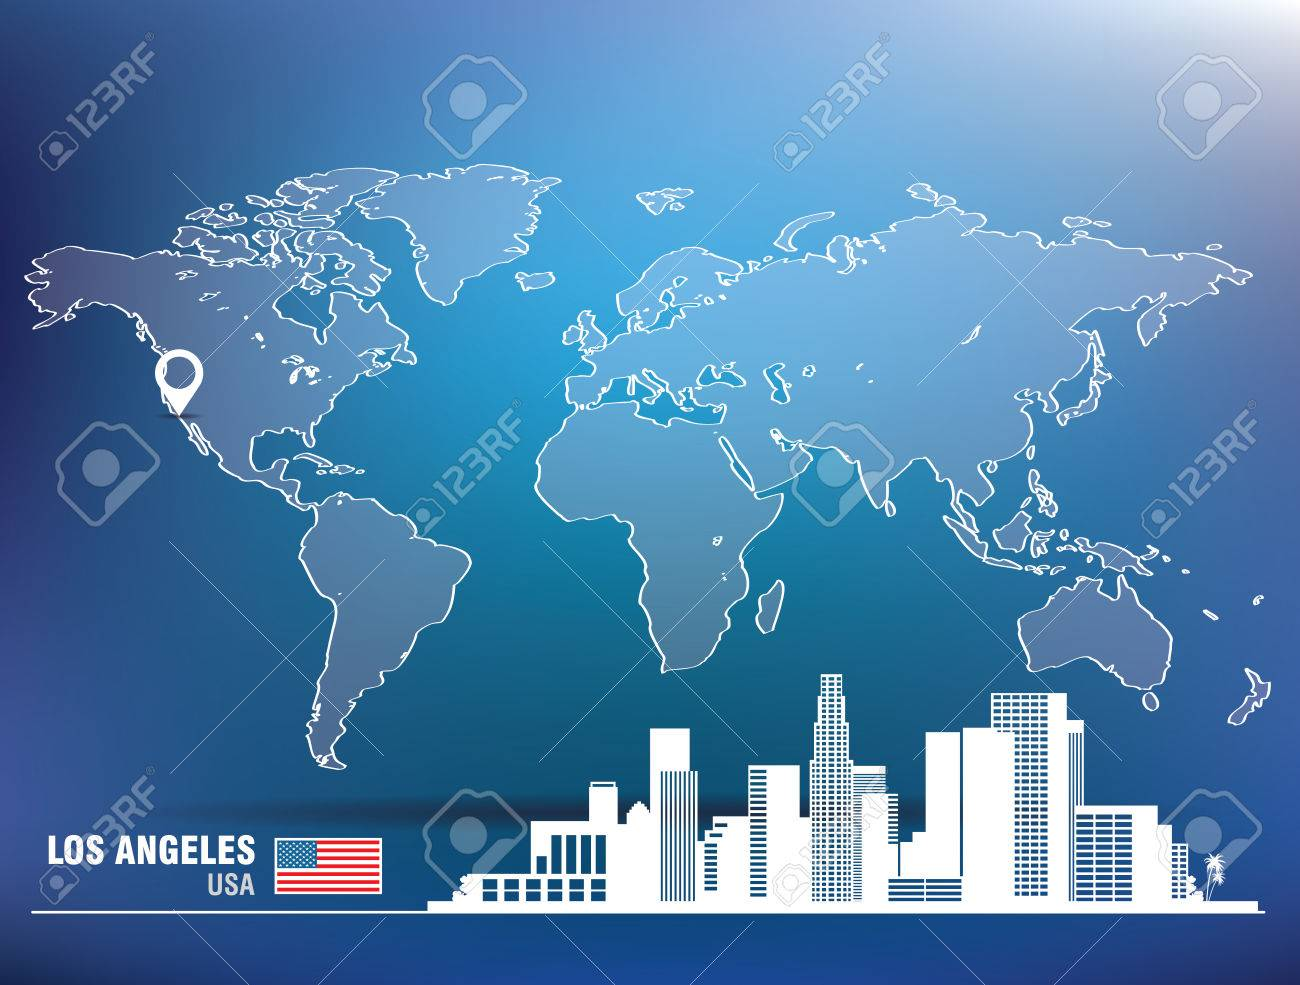 Map Pin With Los Angeles Skyline Vector Illustration Royalty - Los angeles map world